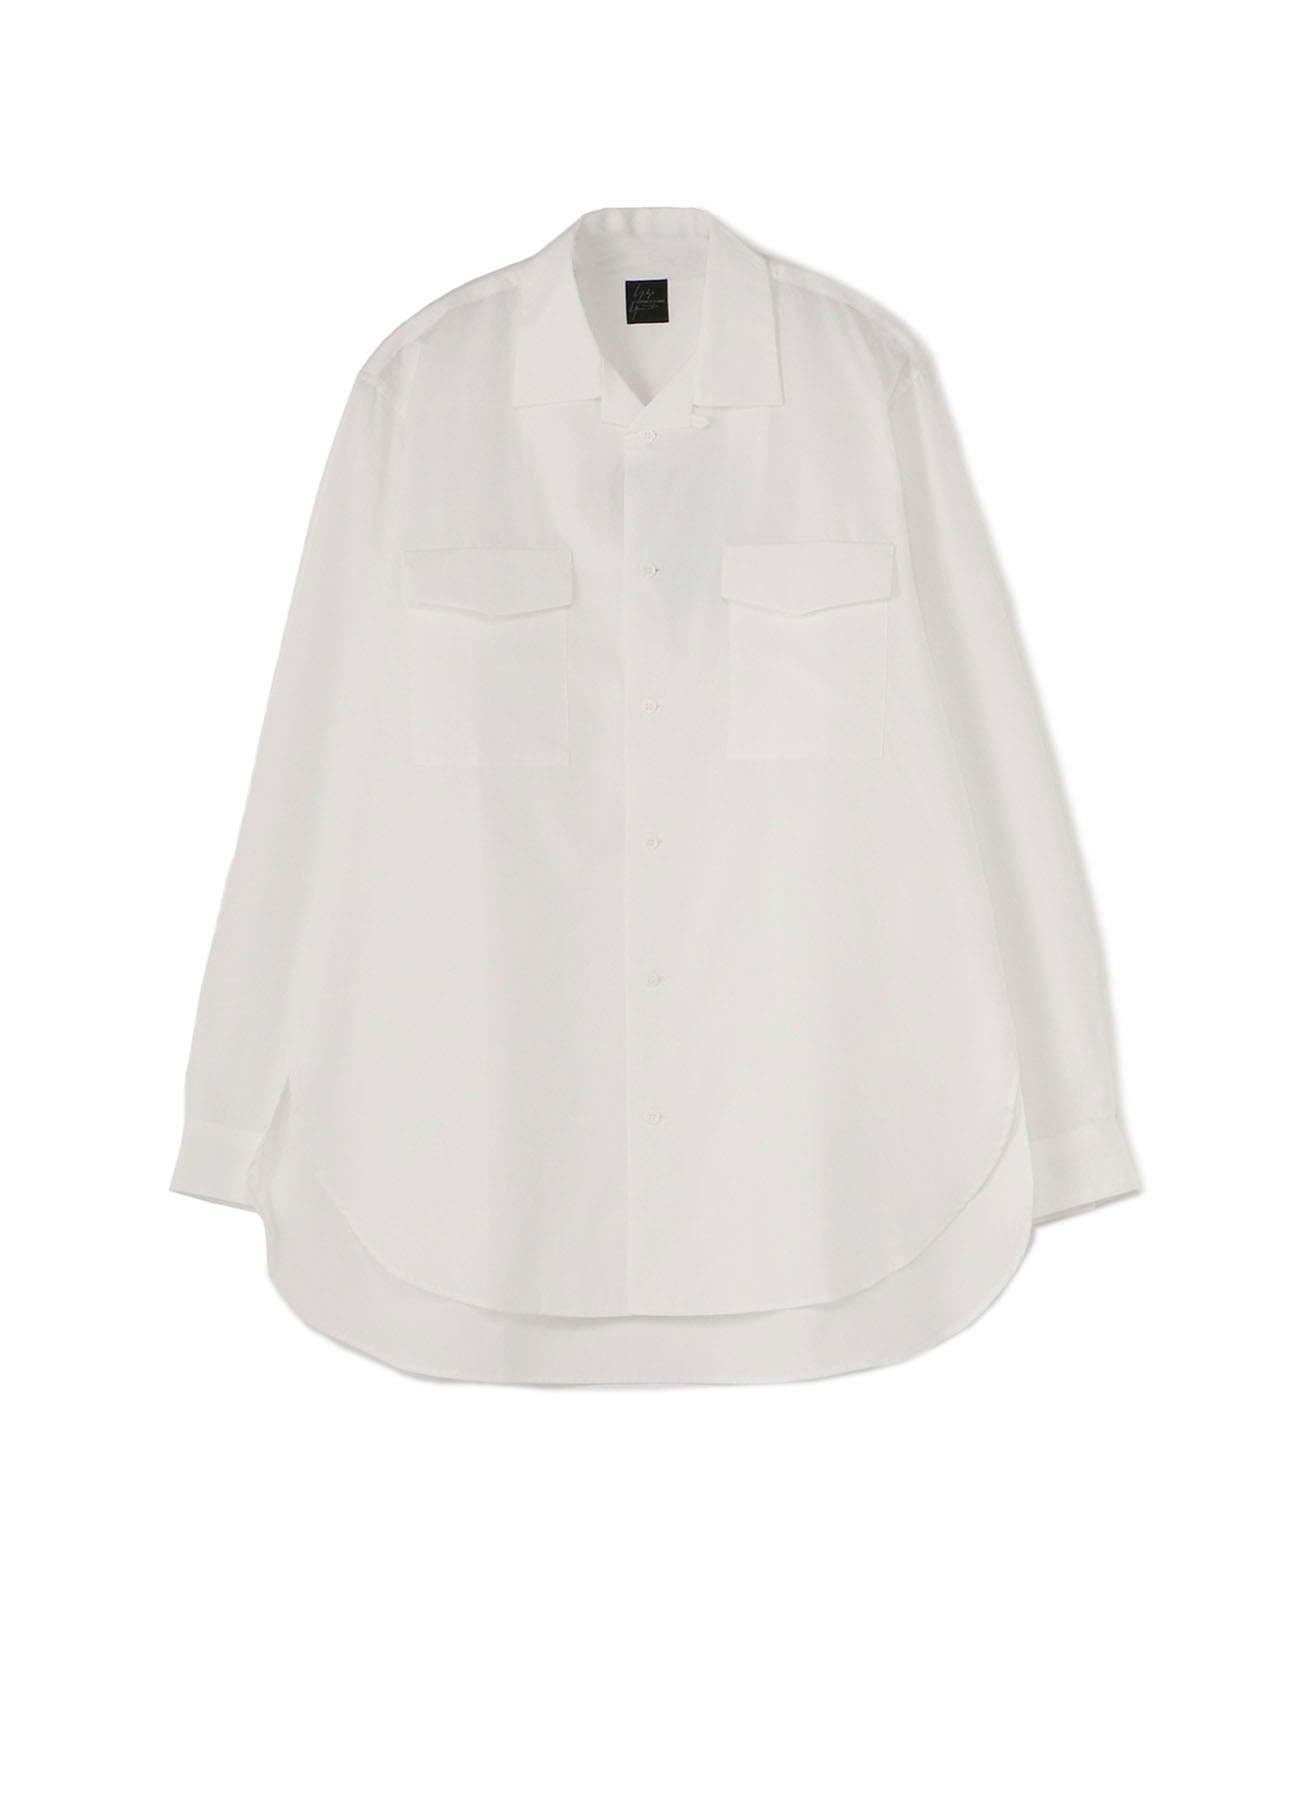 COSTUME D'HOMME SUIT BROAD OPEN COLLAR SHIRT